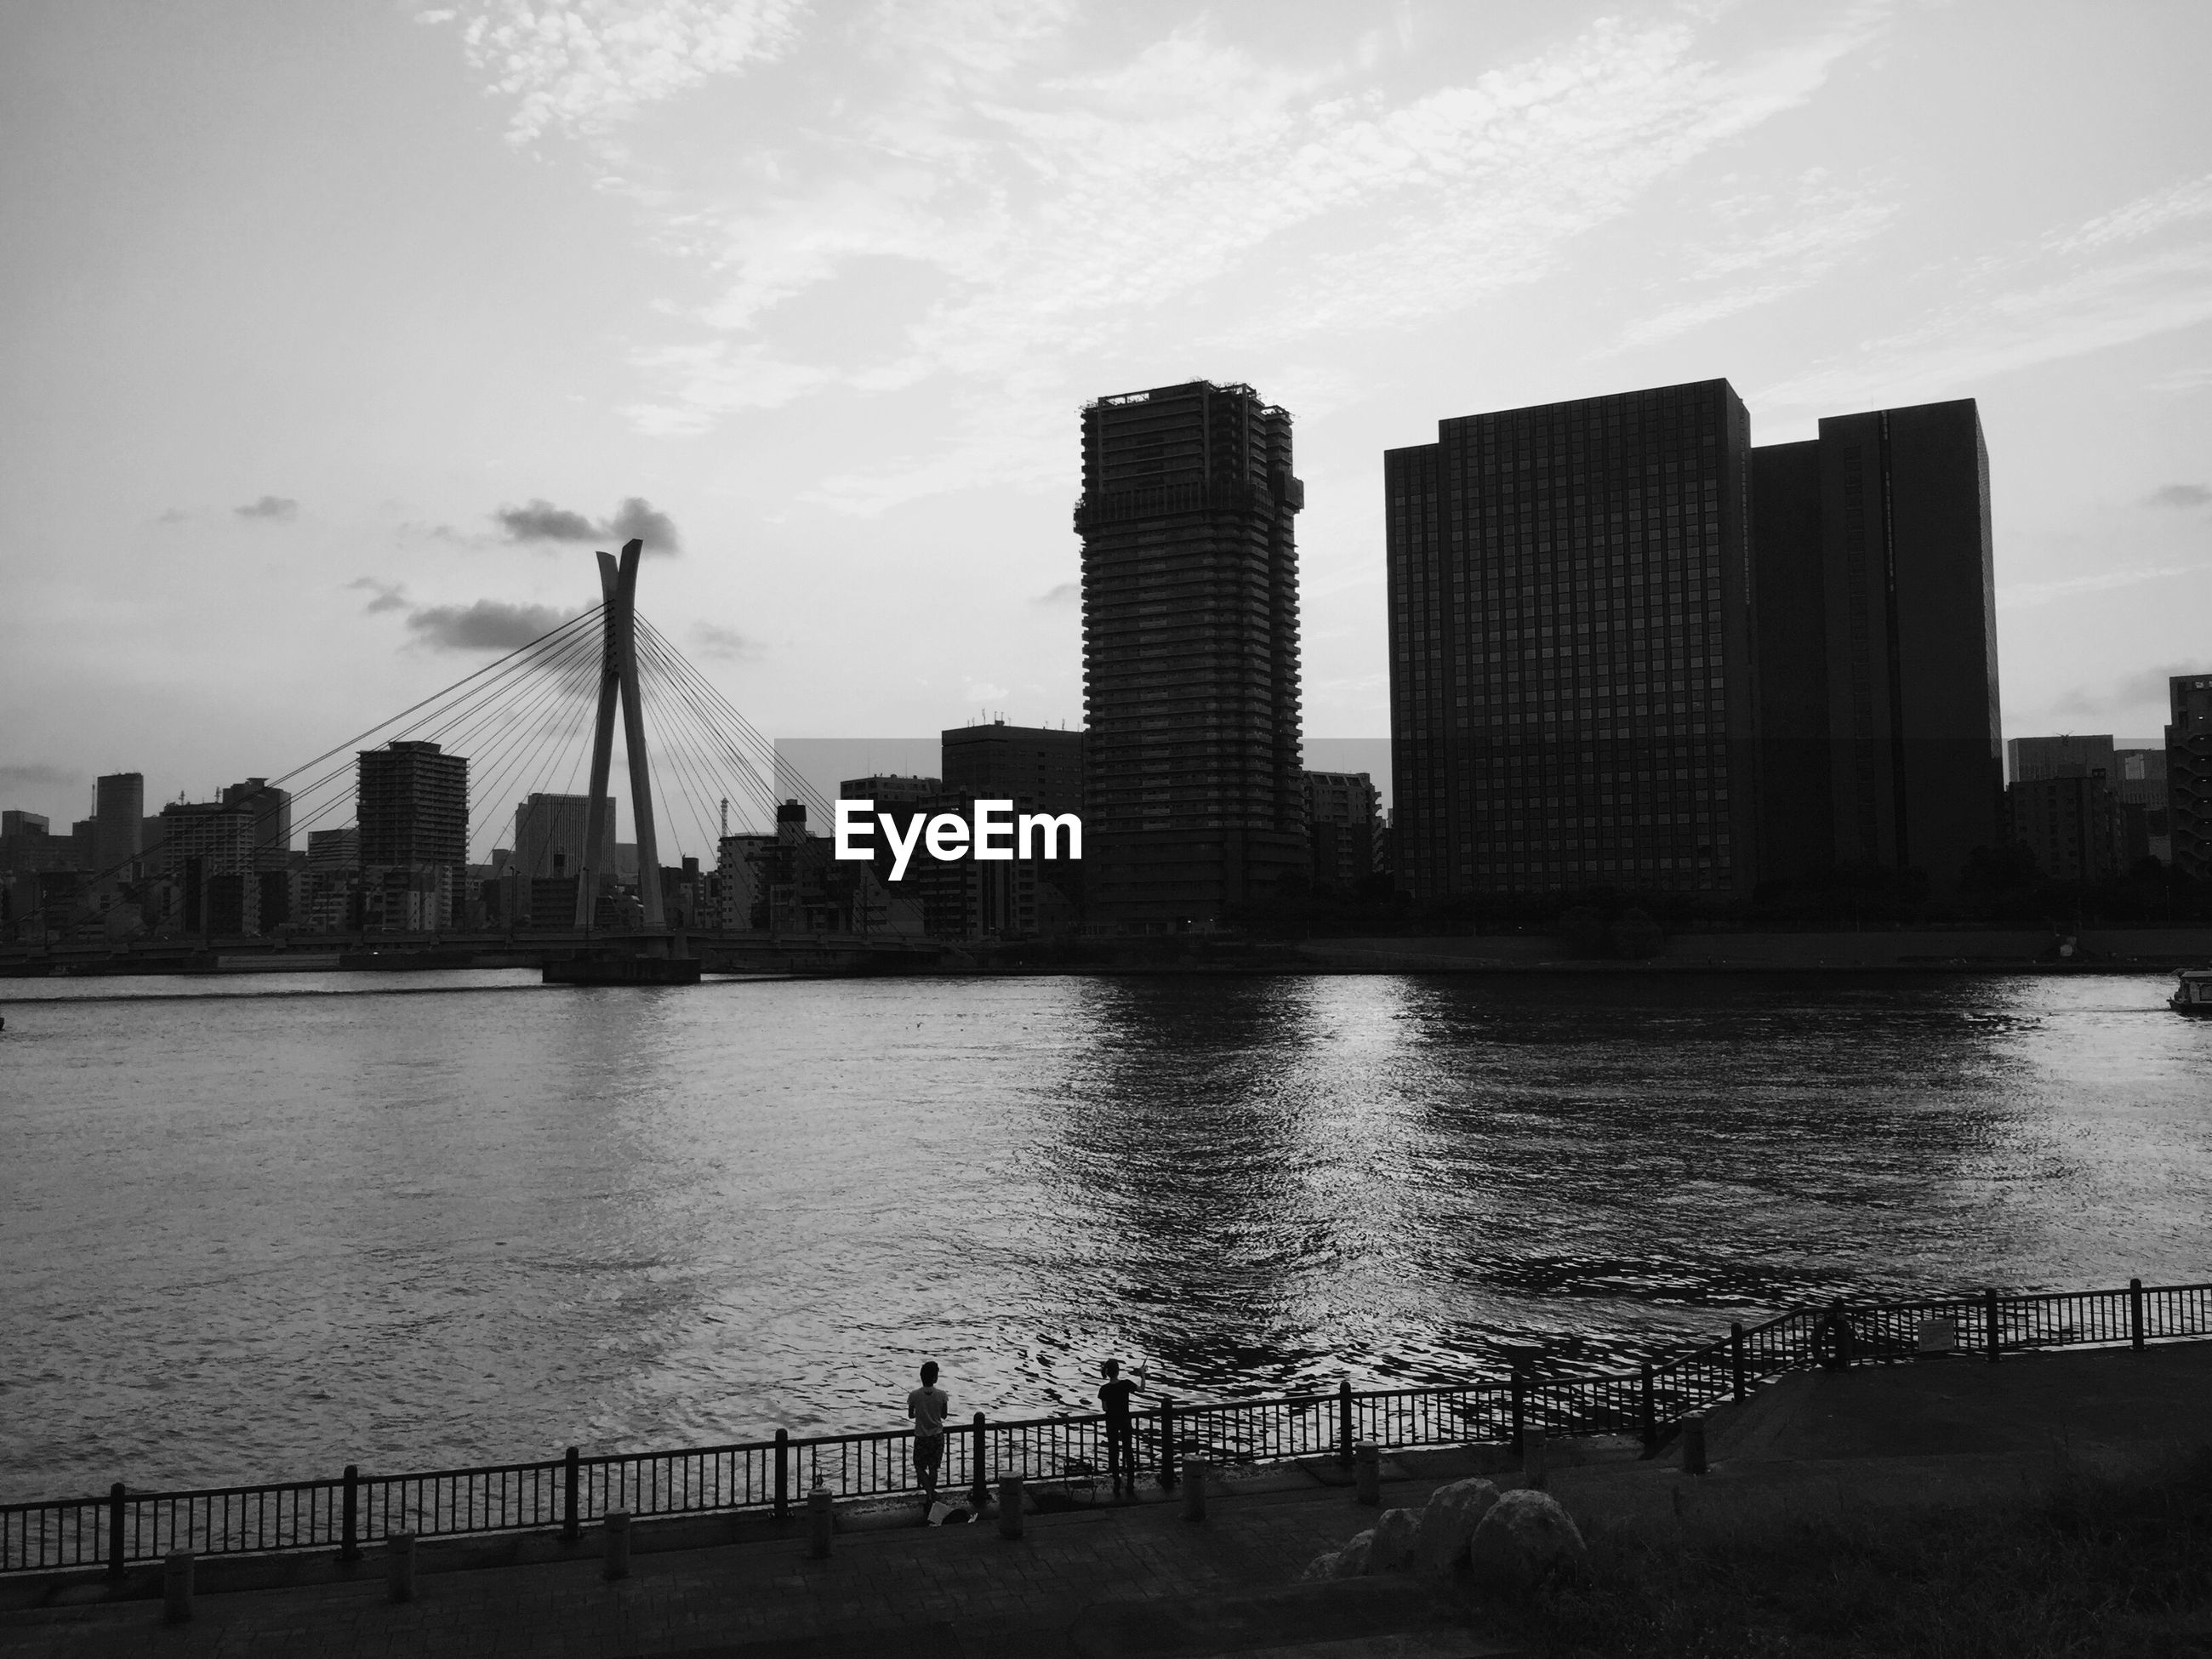 Scenic view of sumida river by buildings against sky